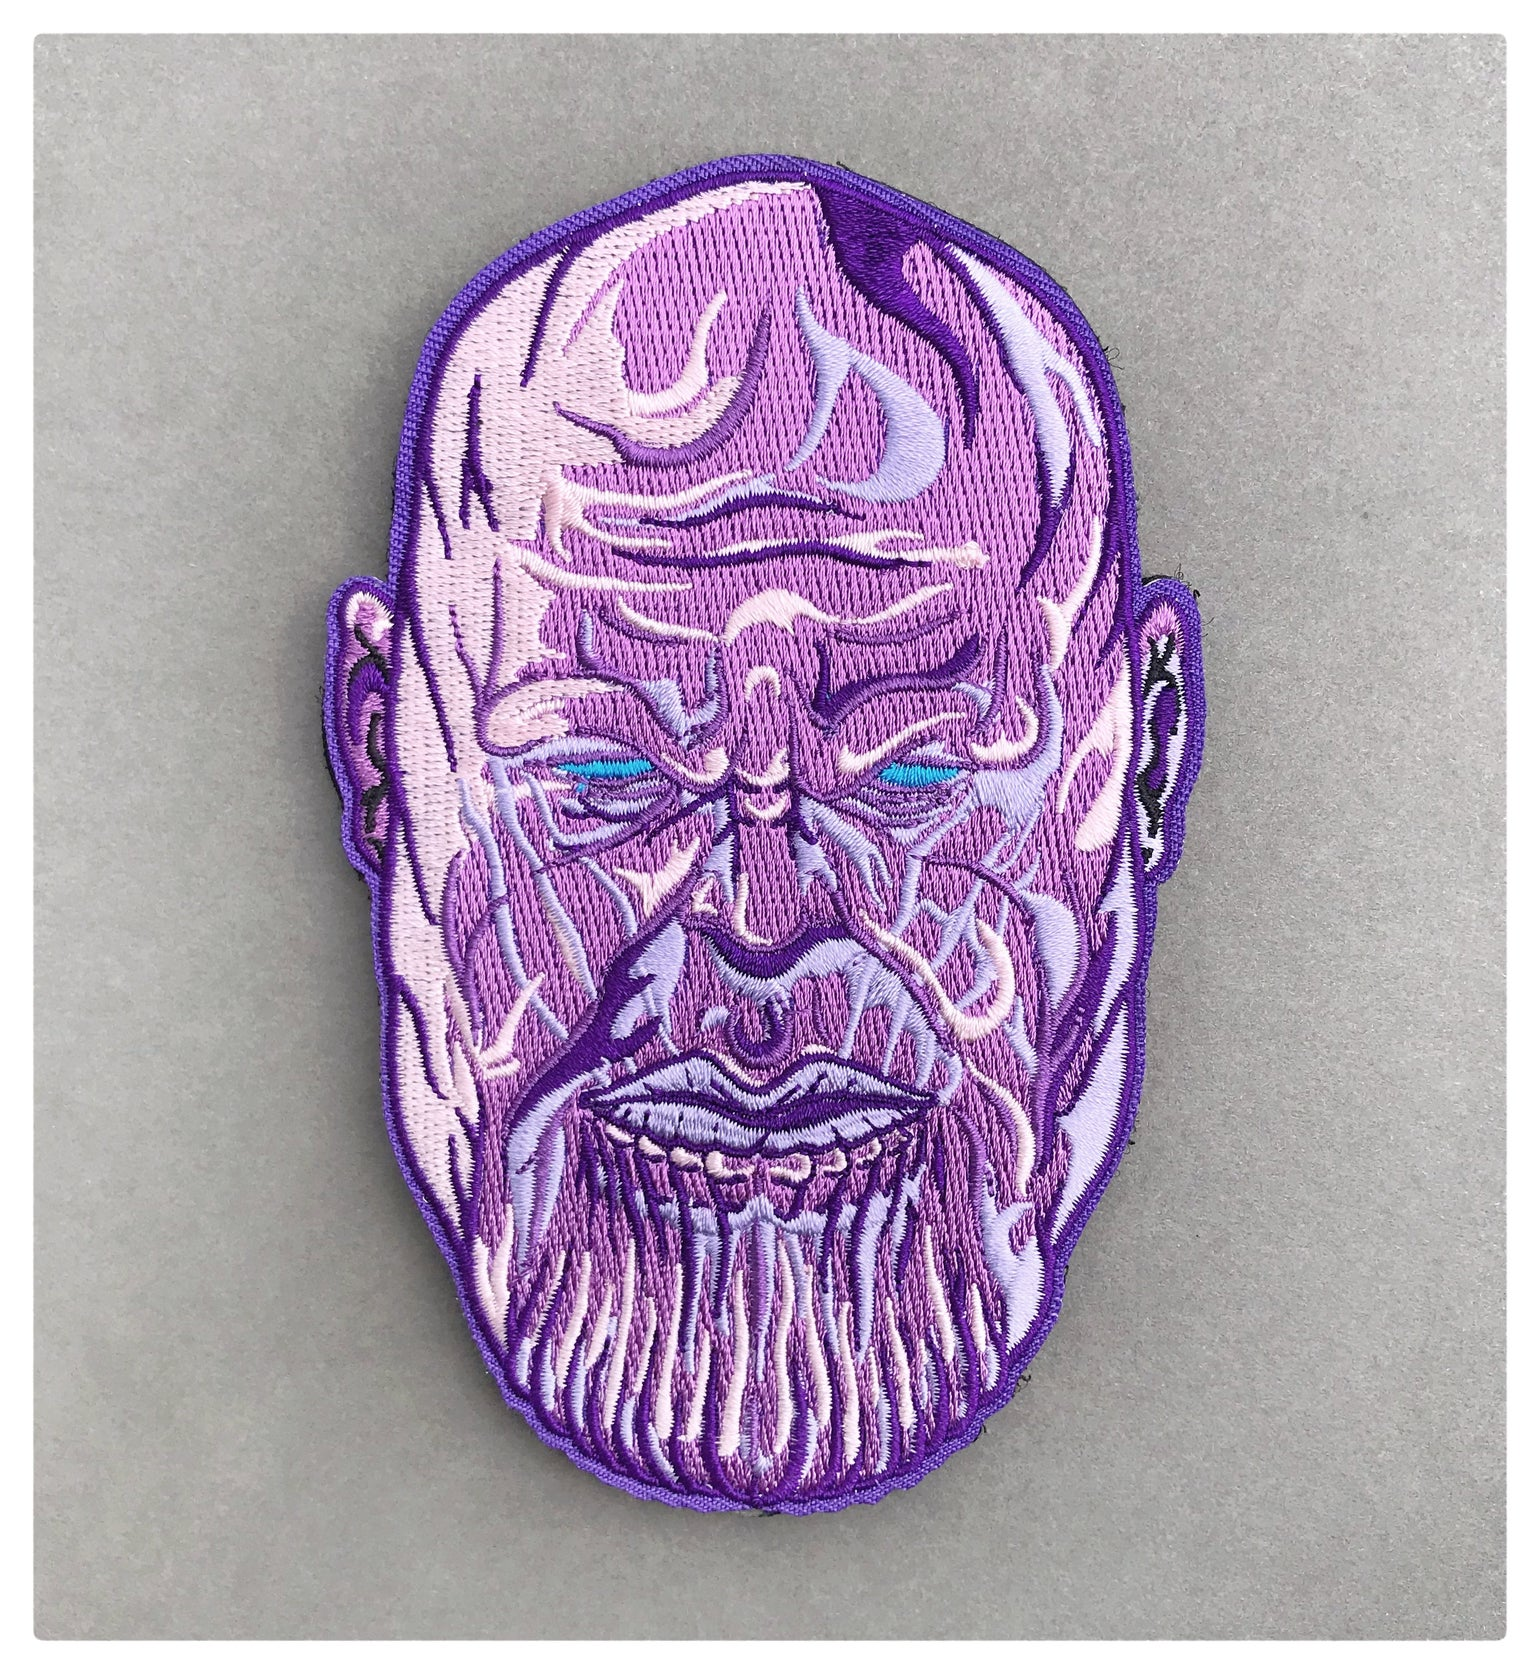 Image of Purple Reign patch